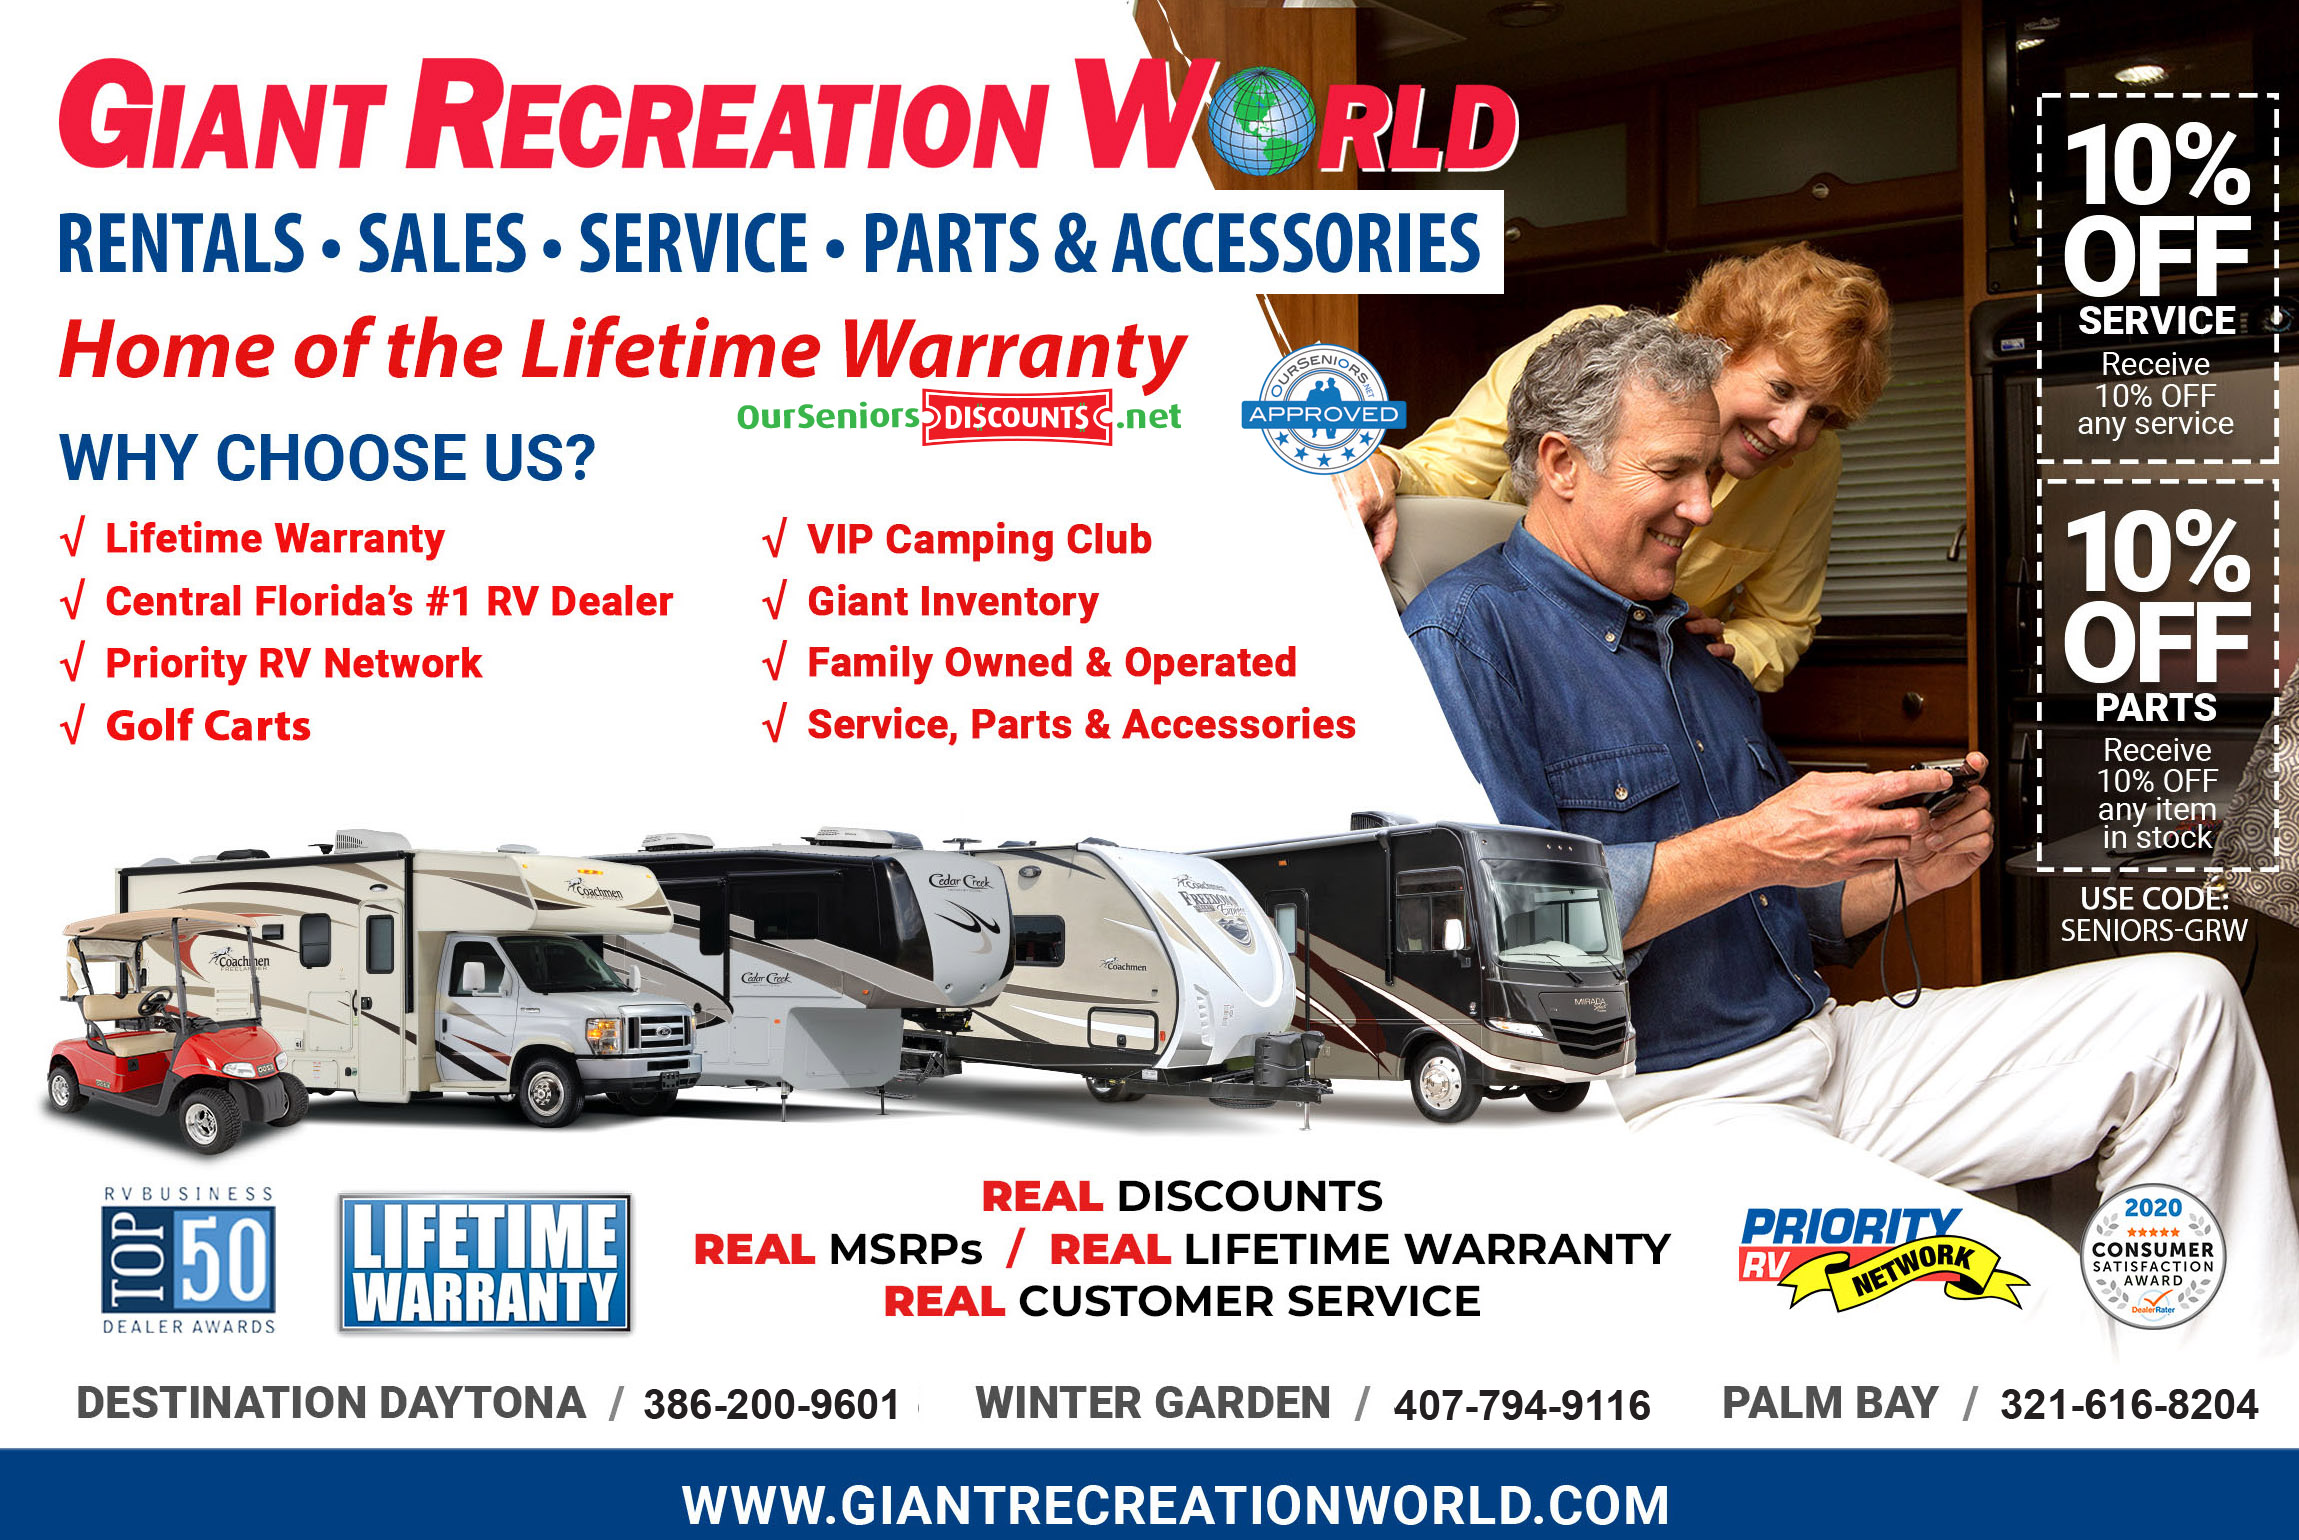 Giant Recreation World